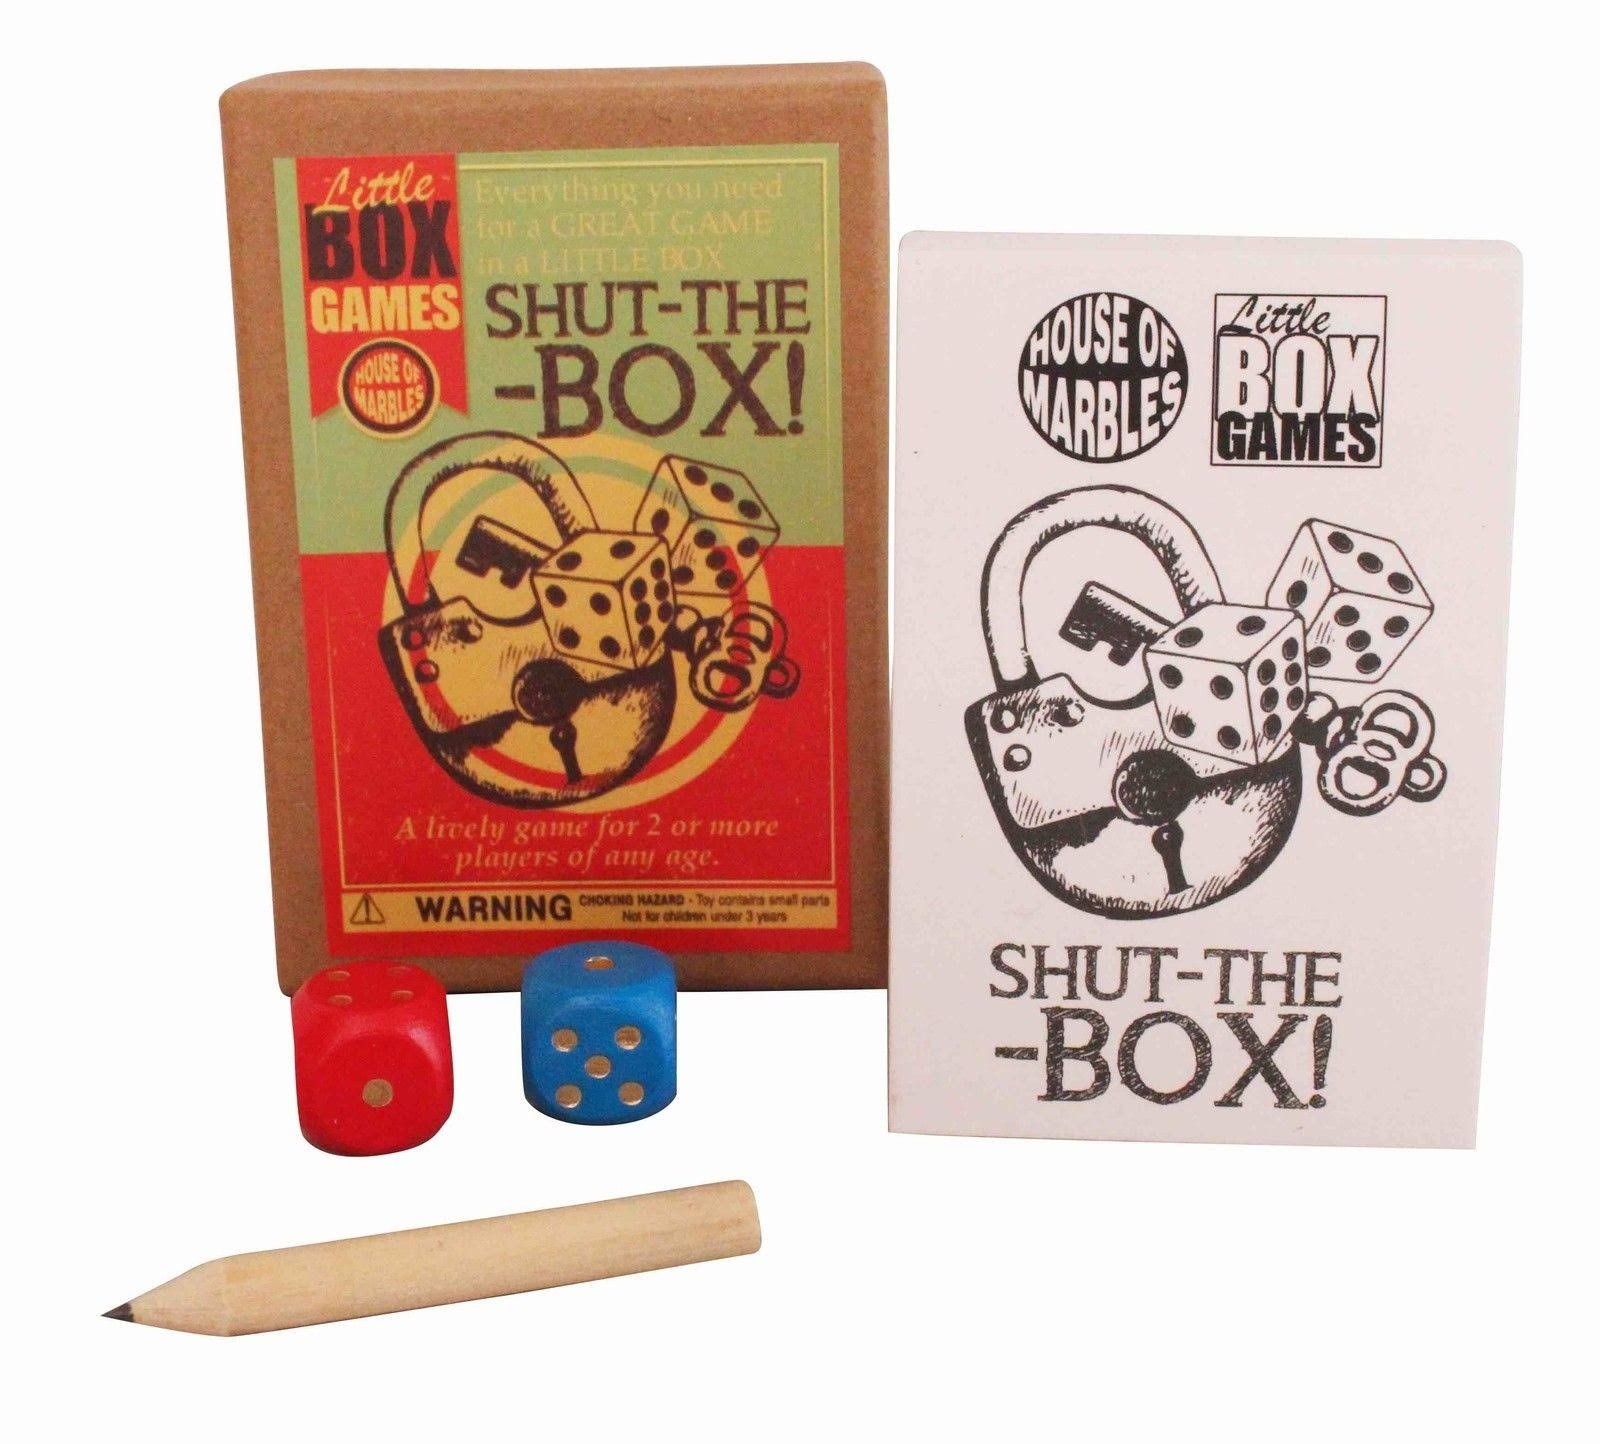 House of Marbles Shut-the-box Game Retro Vintage Toy